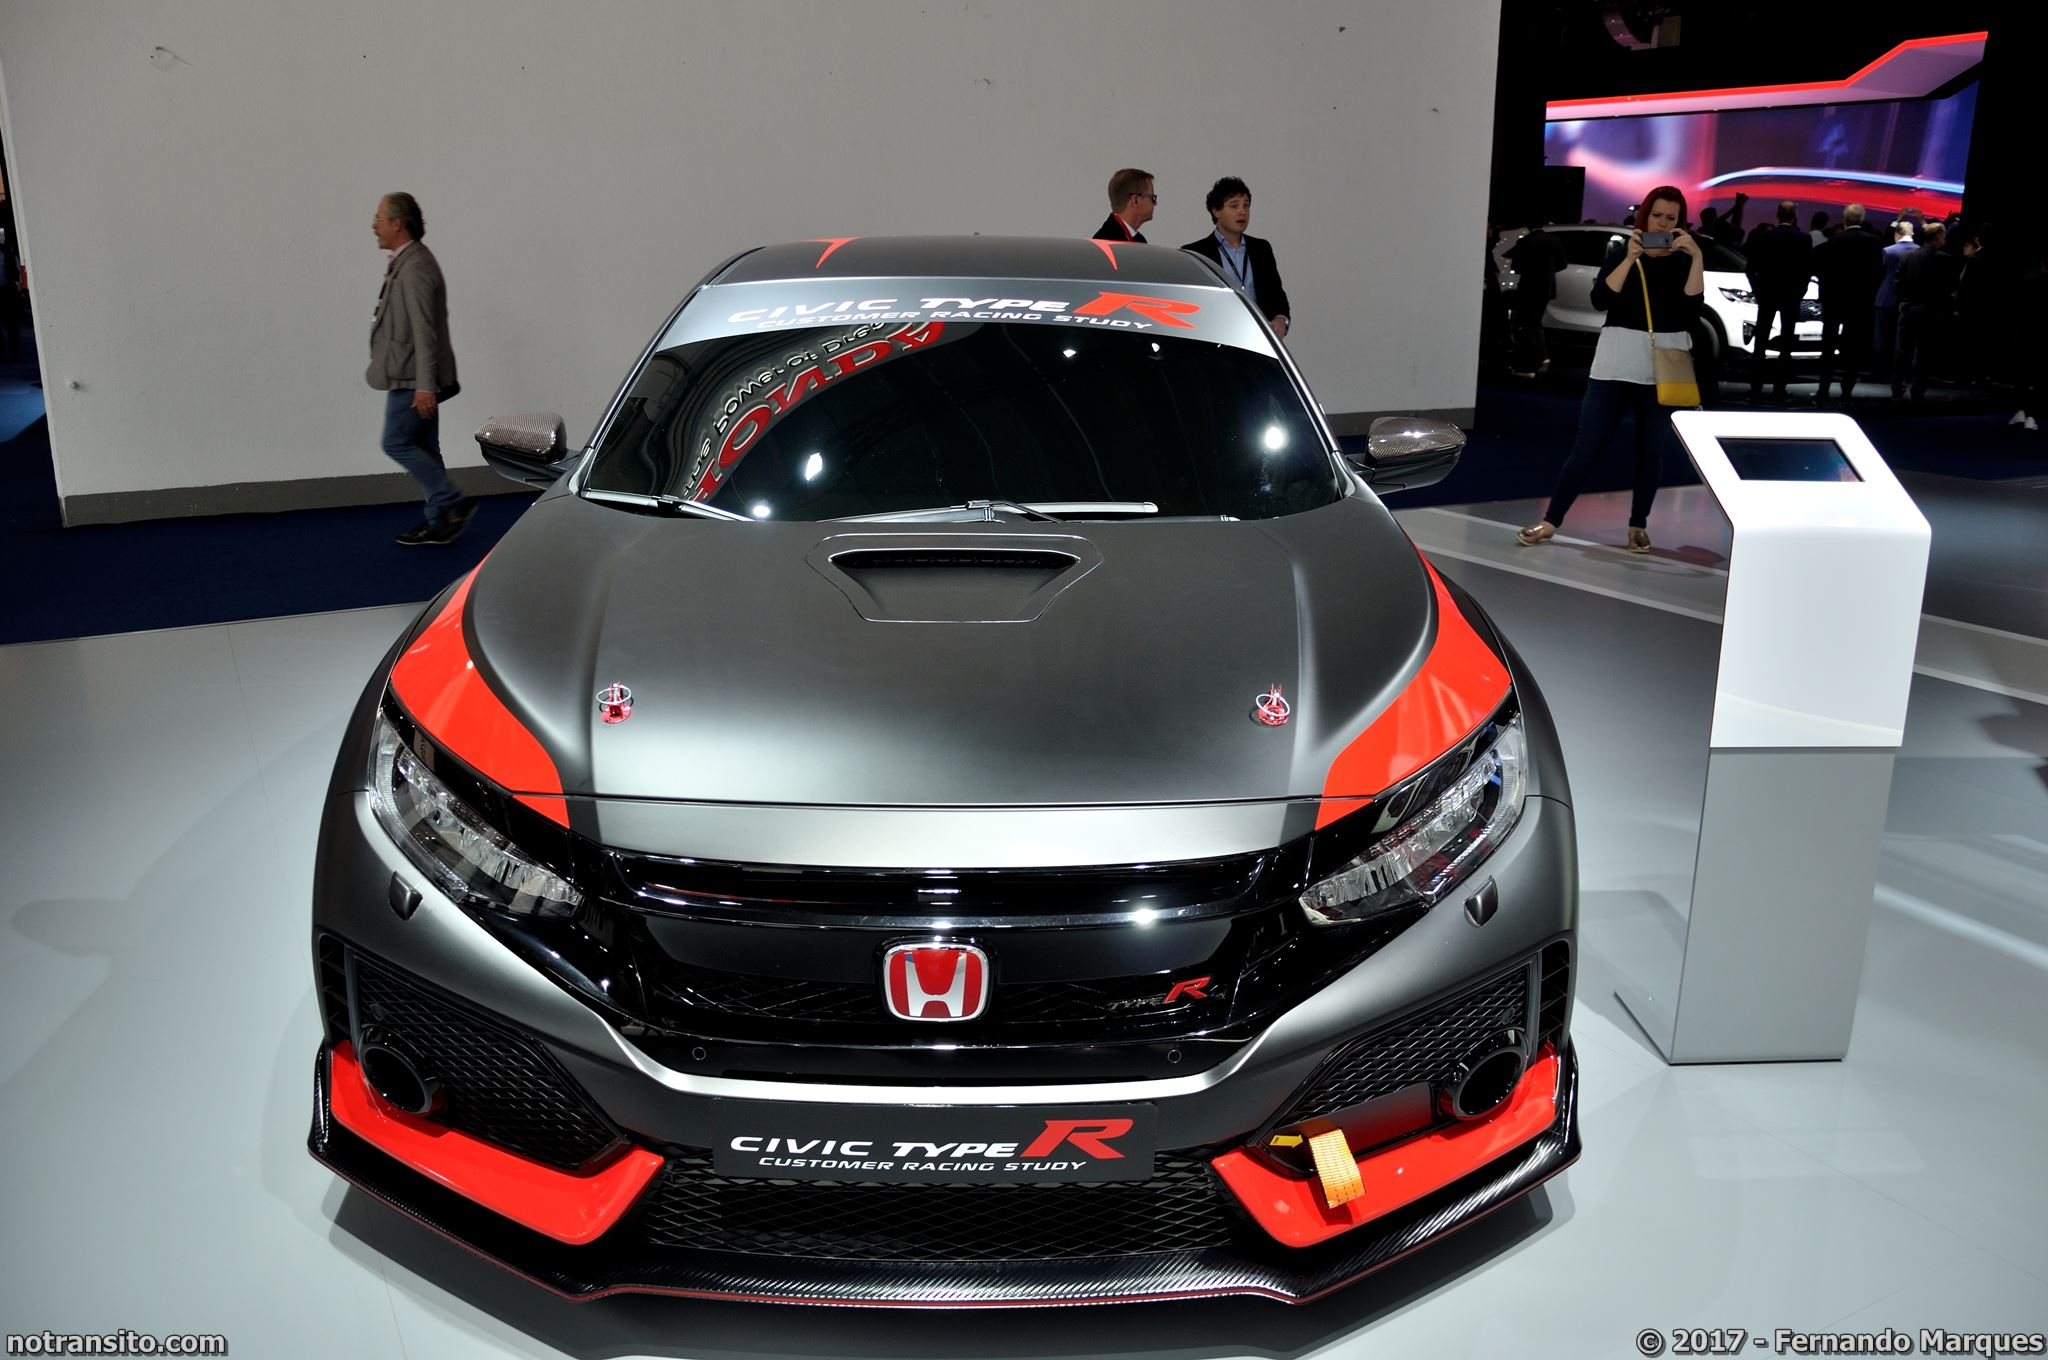 Novo Honda Civic Type R >> Honda Civic Type R & Honda NSX – No Trânsito